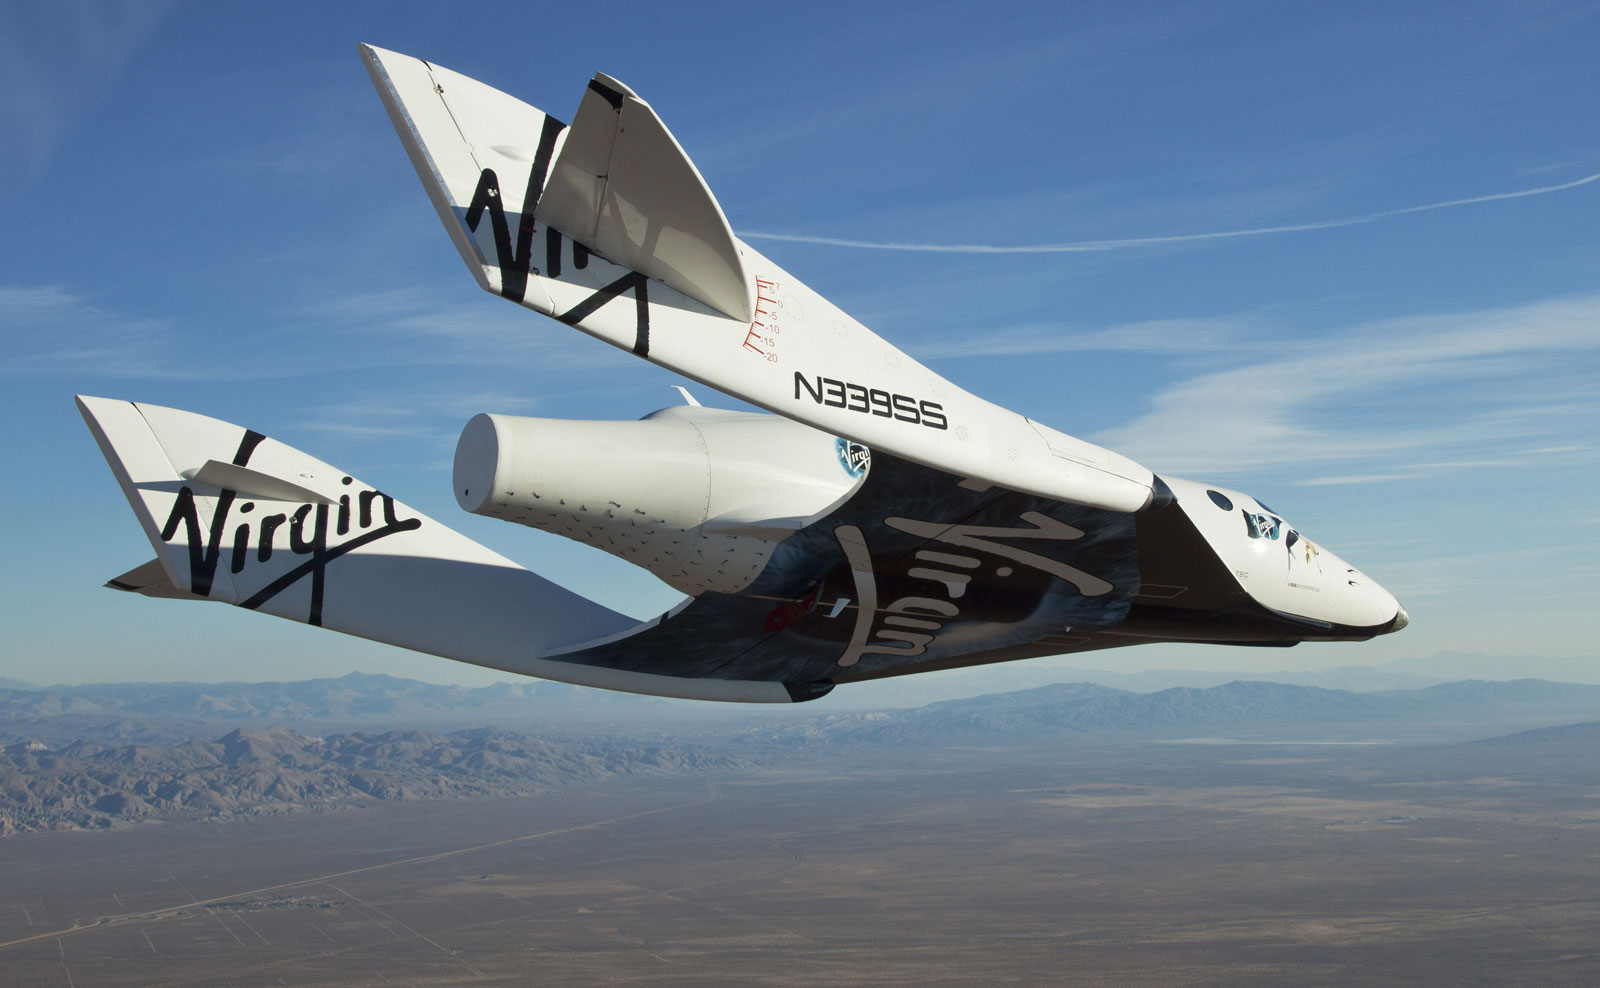 Virgin Galactic's VSS Enterprise